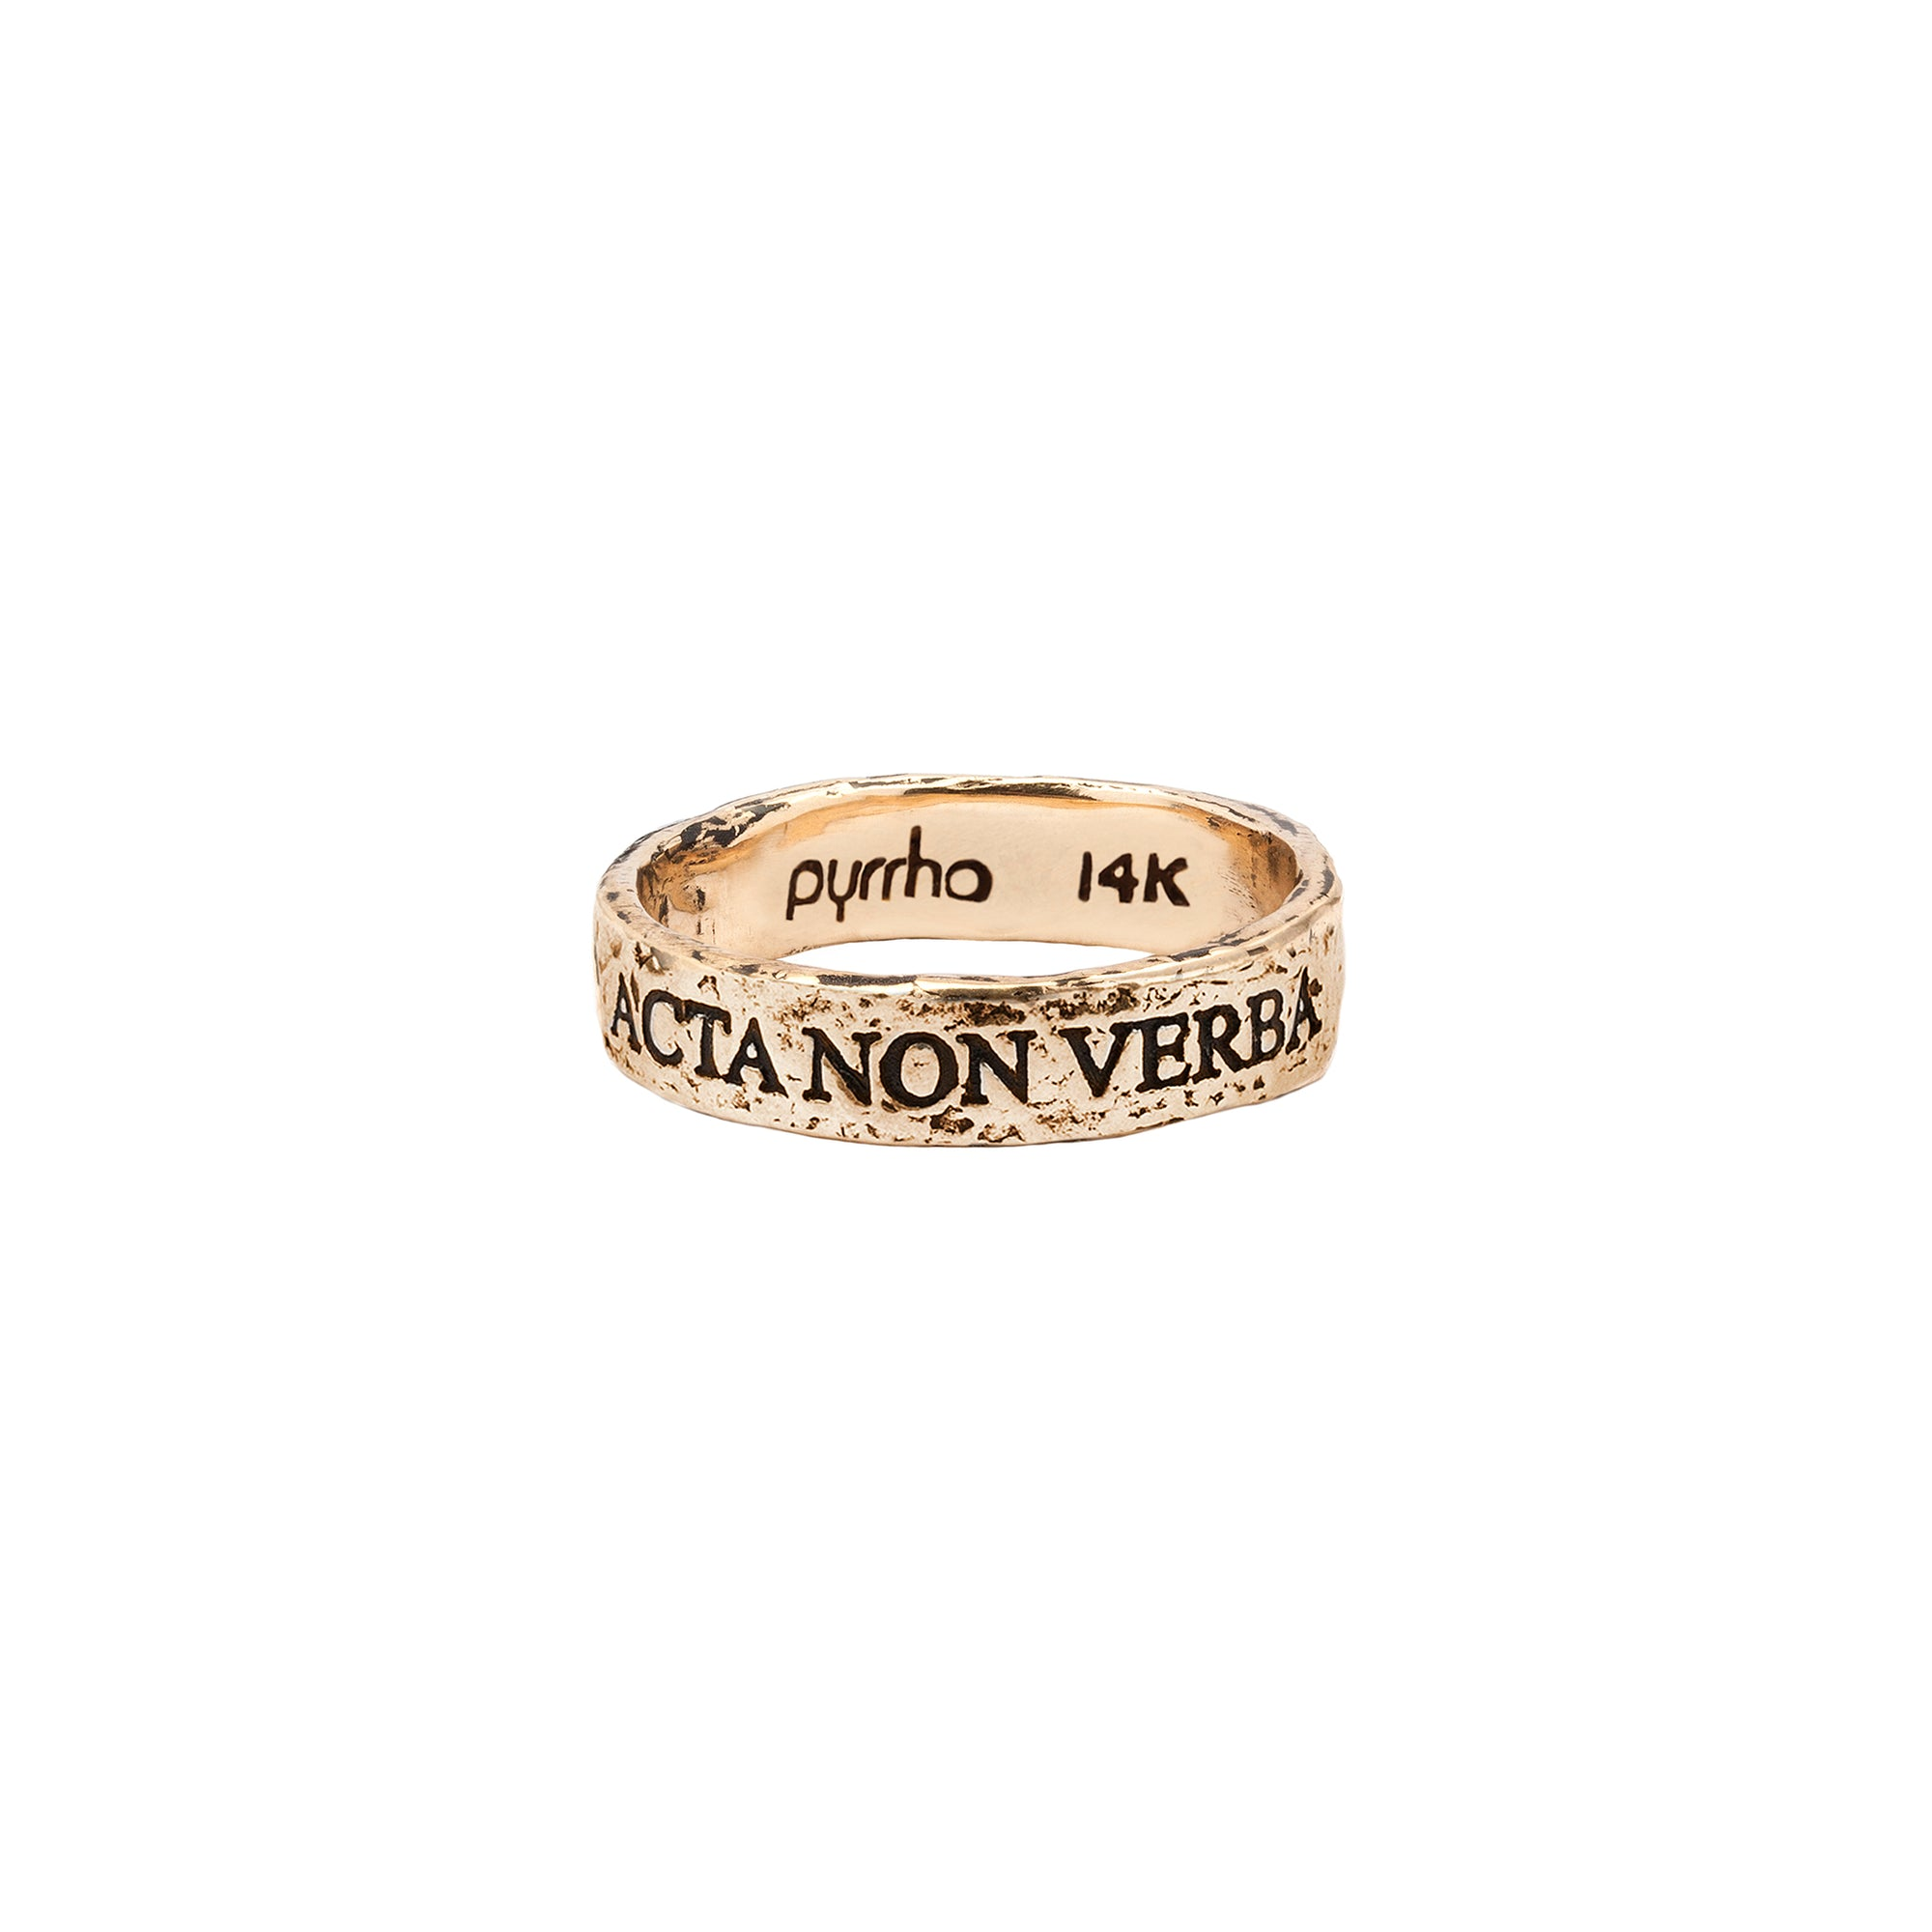 Pyrrha 14k acta non verba latin motto band ring